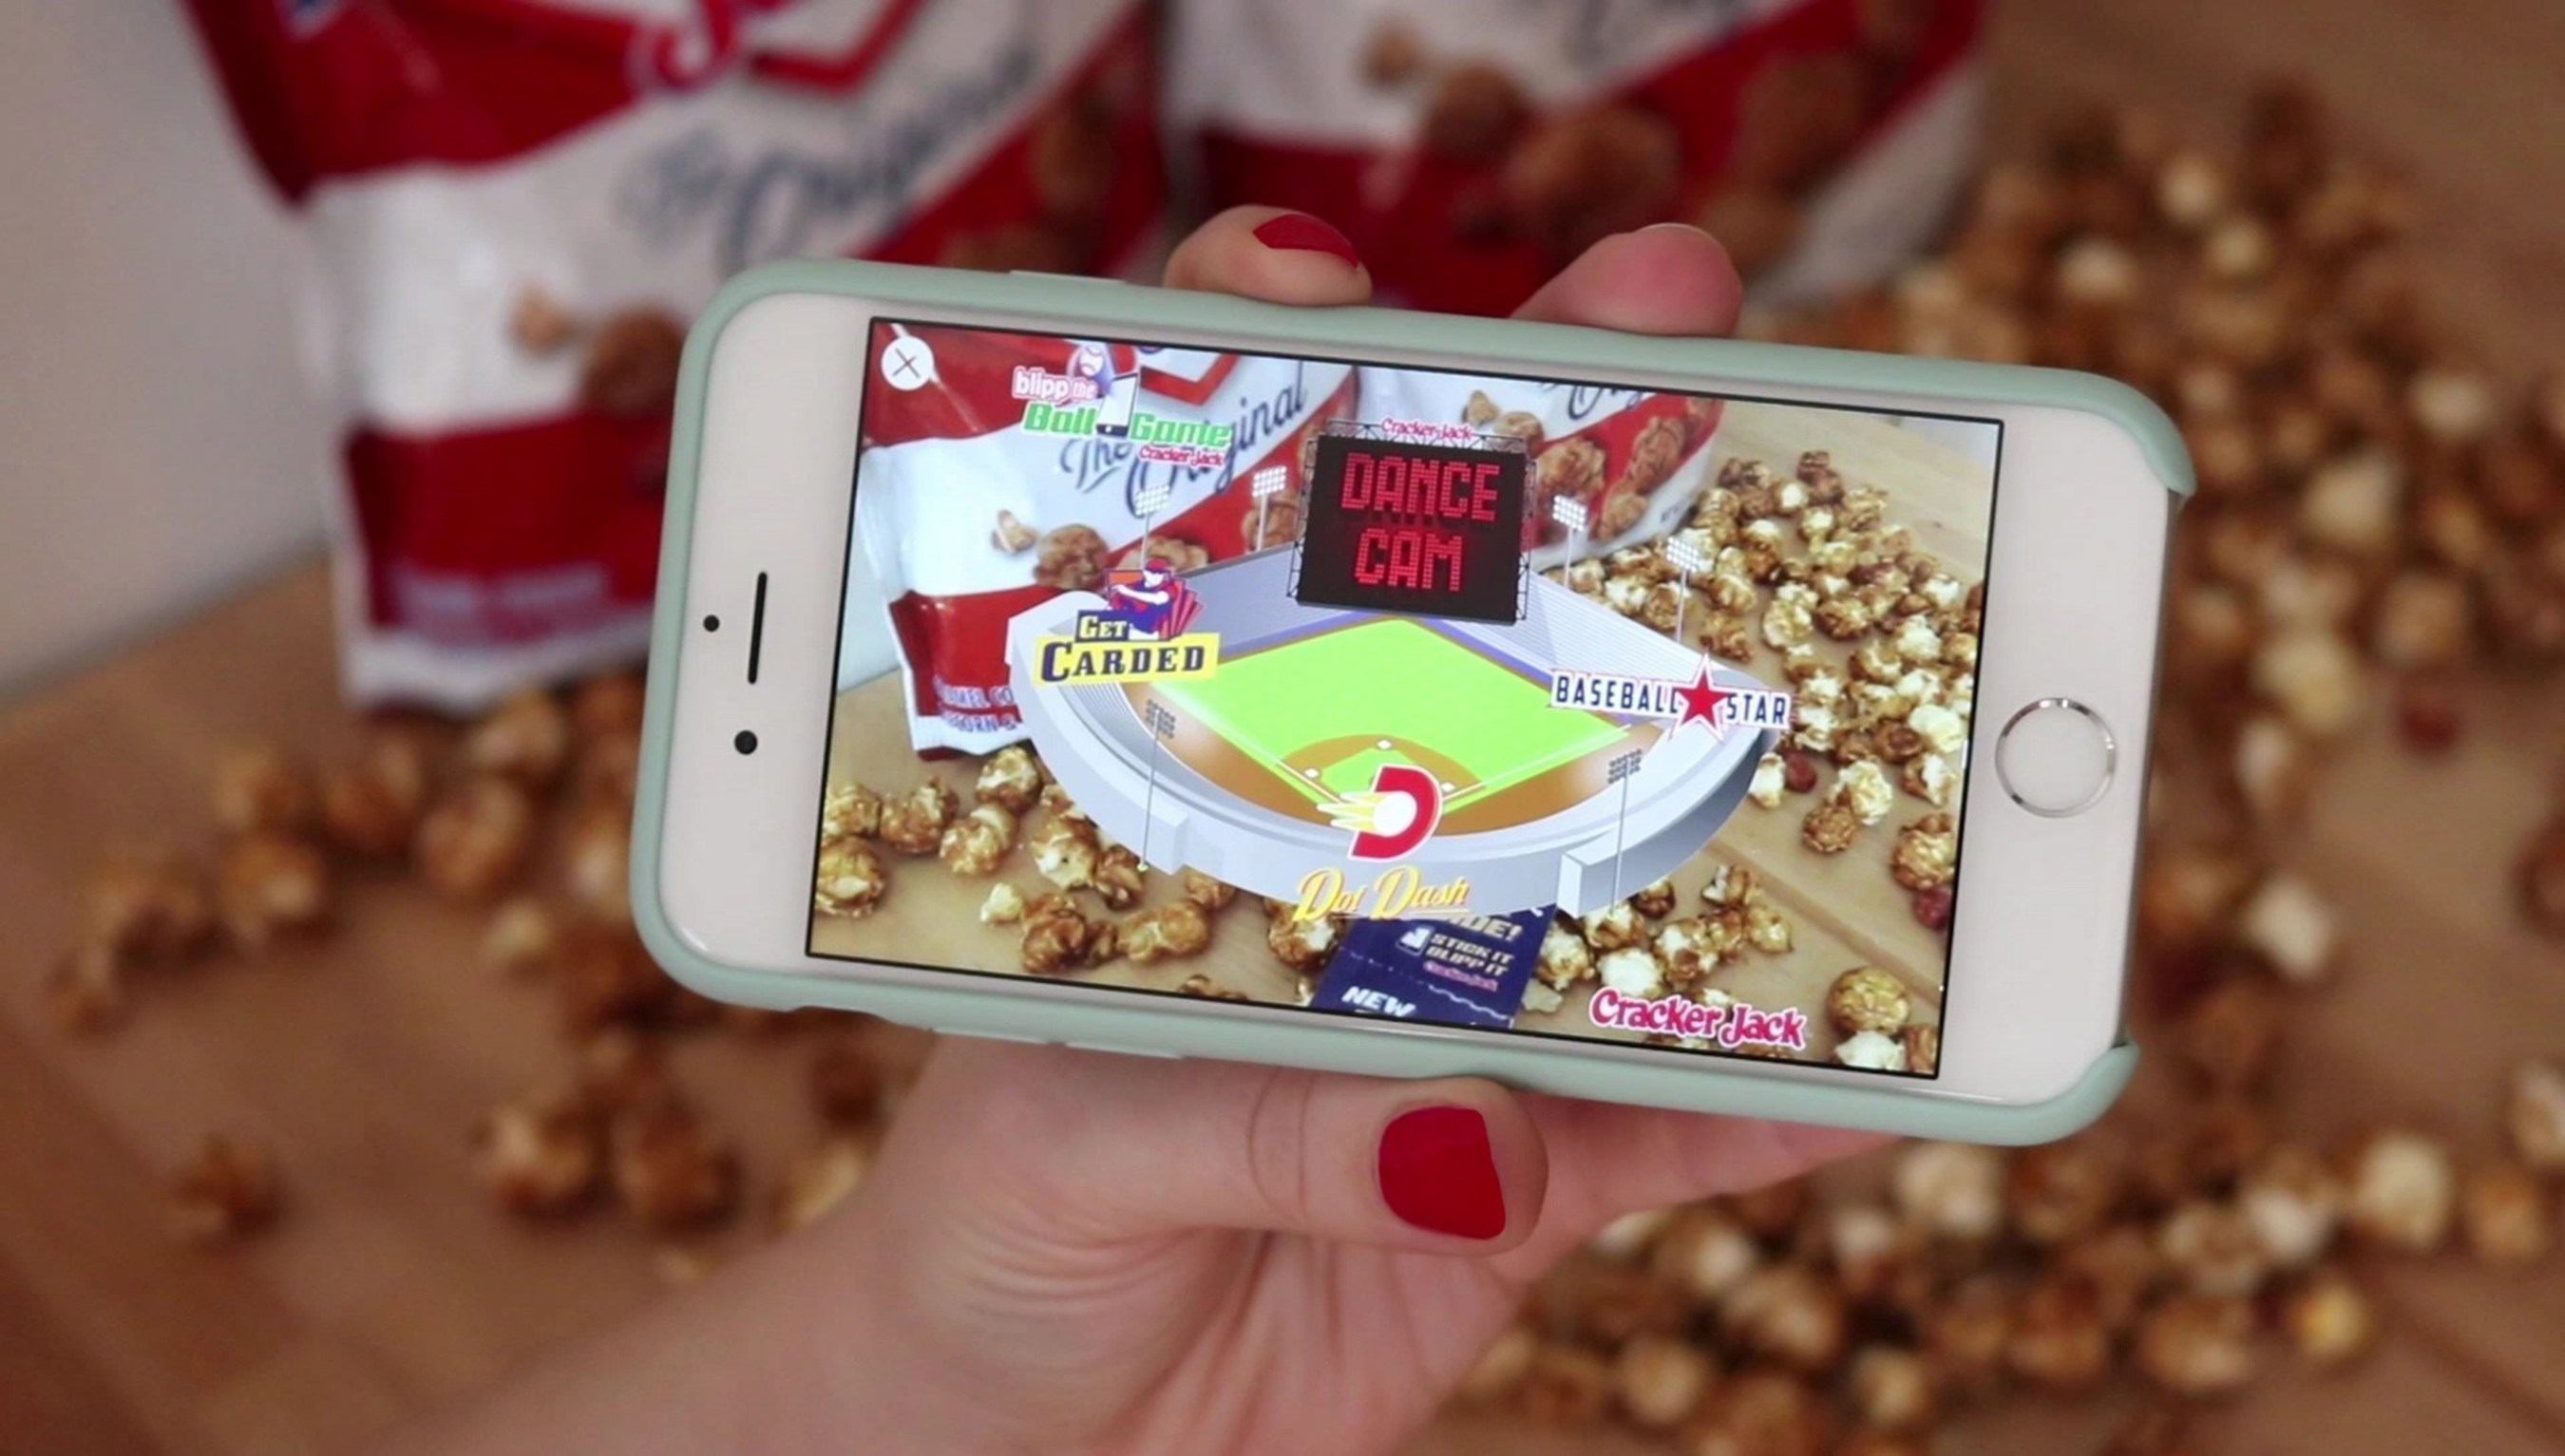 The new Prize Inside mobile experience brings the ballpark to life with four-baseball themed games: Dot Dash, Dance Cam, Get Carded and Baseball Star.